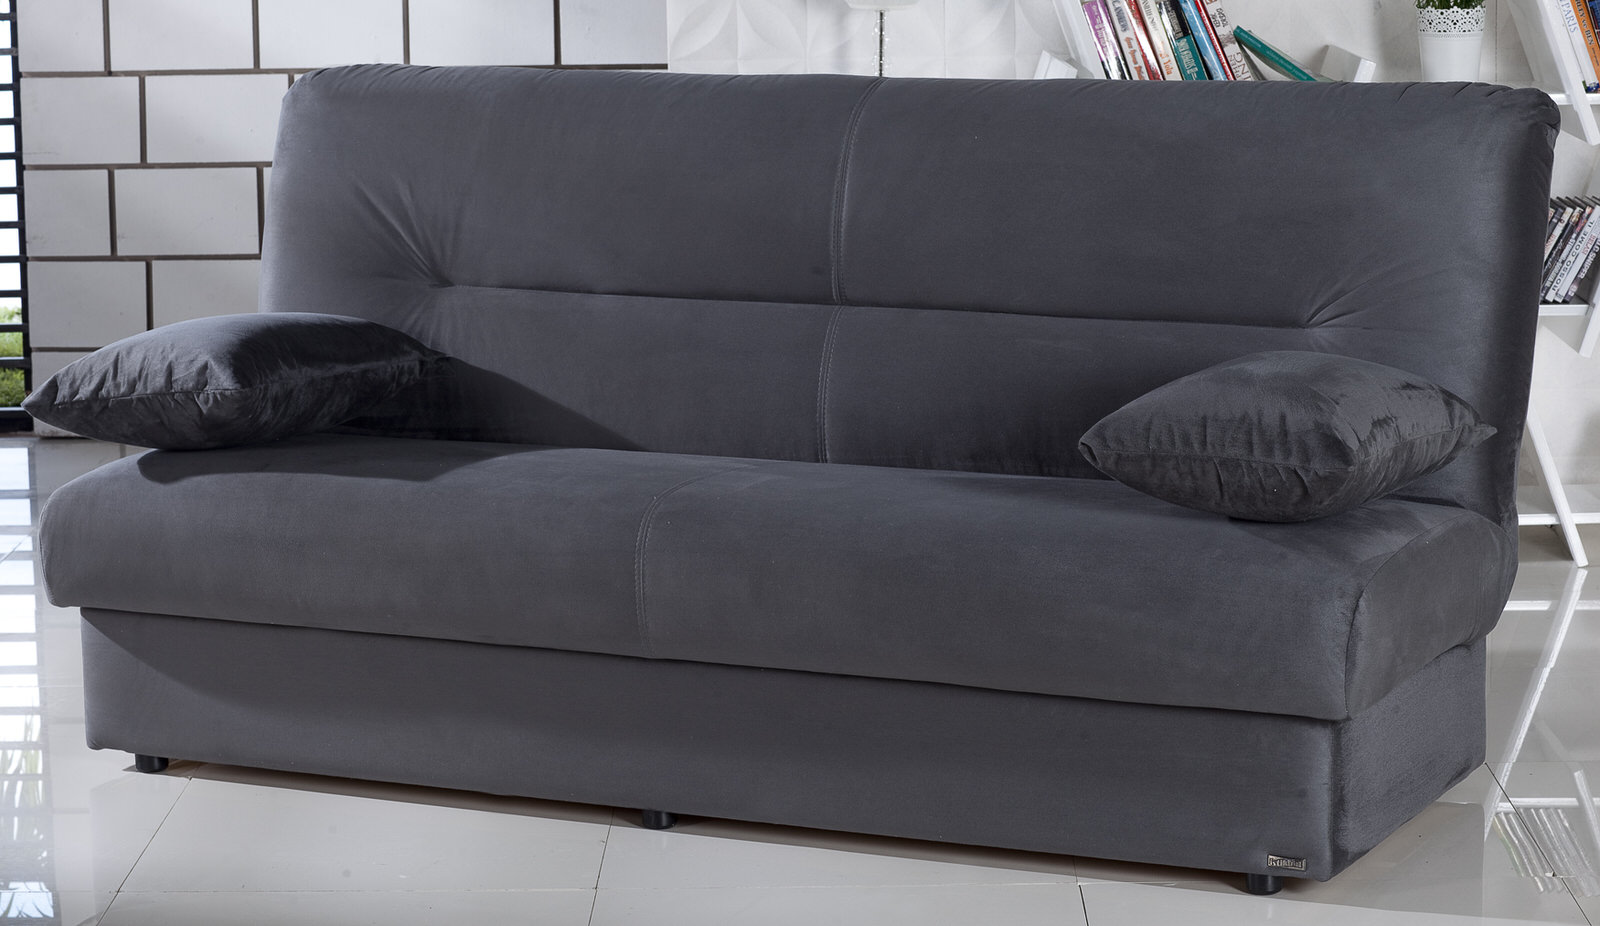 Futon Factory Paris Regata Rainbow Dark Gray Convertible Sofa Bed By Istikbal Furniture